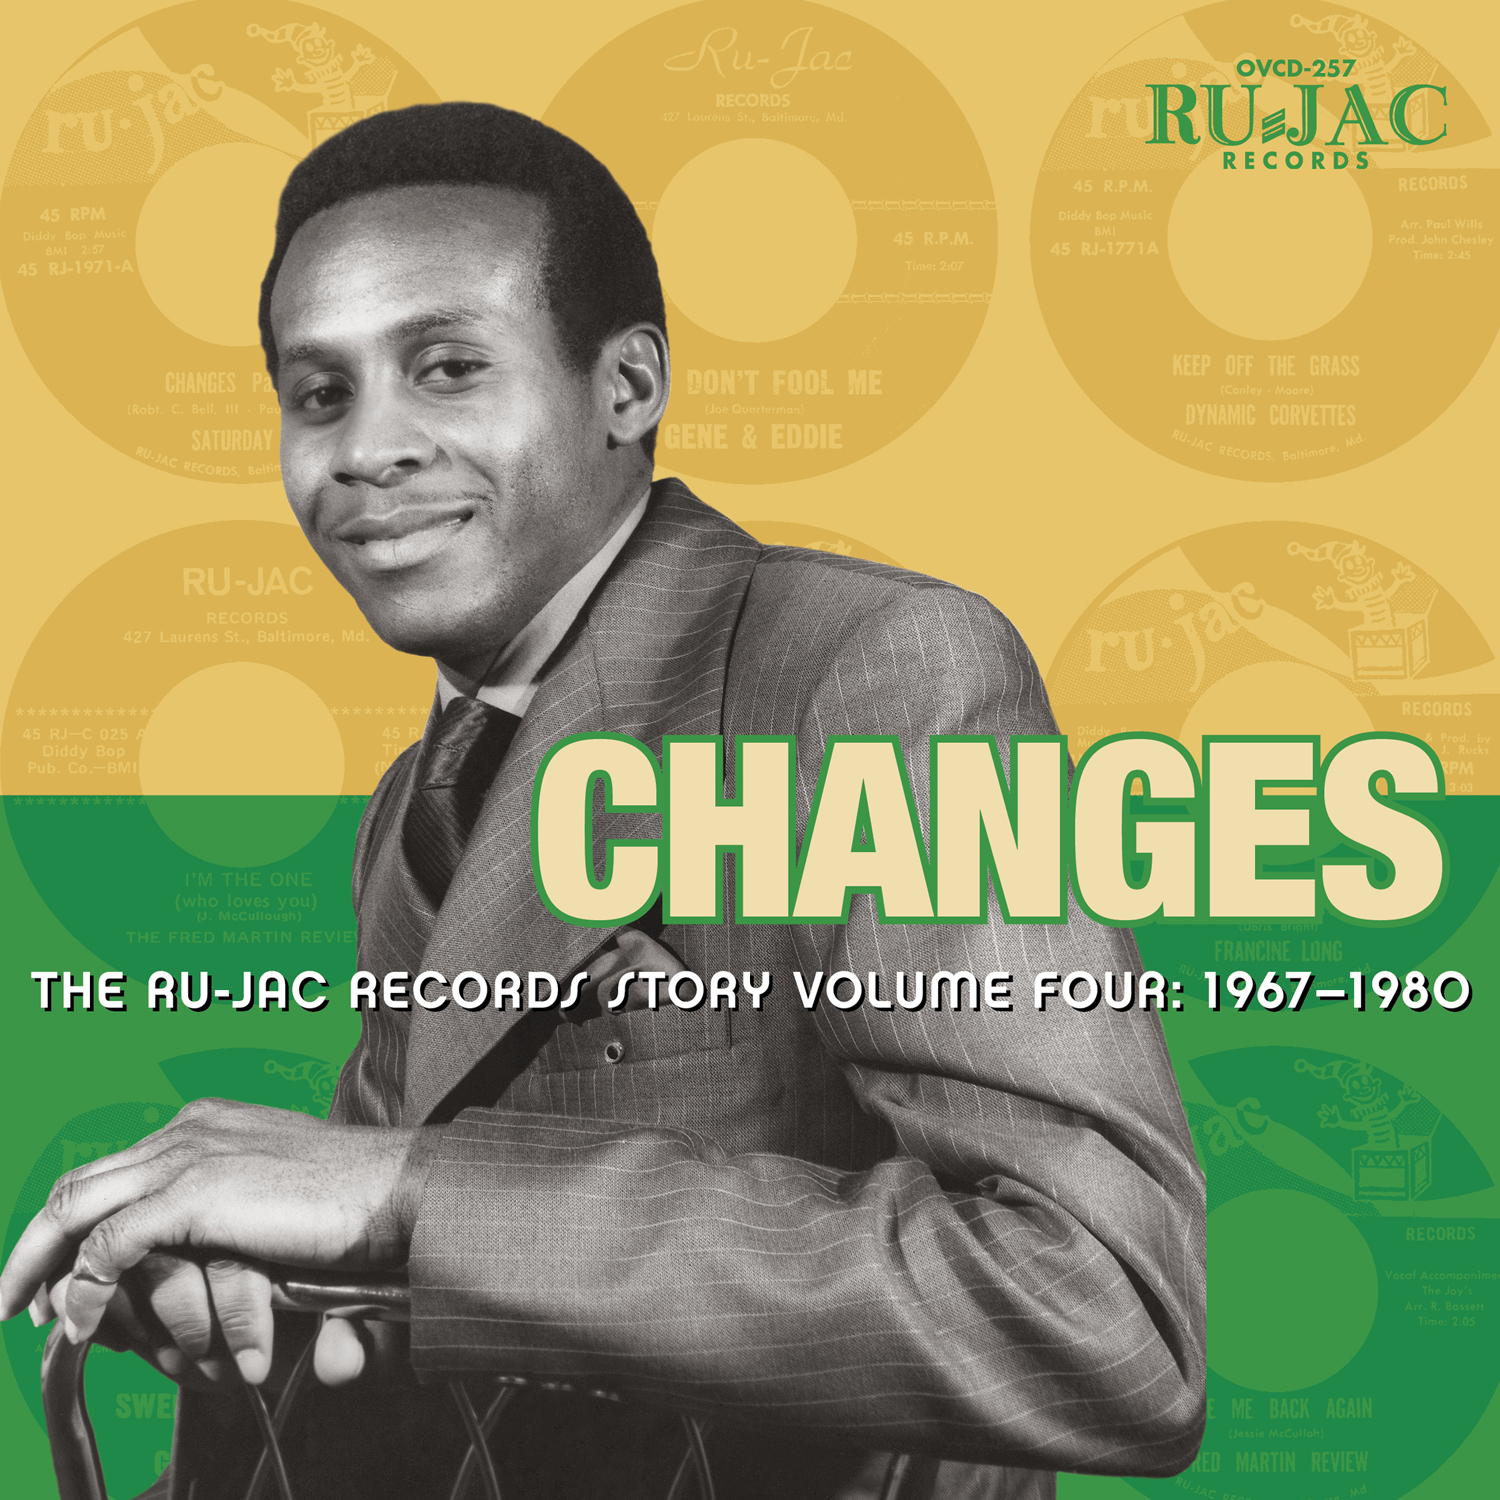 Various Artists -Changes: The Ru-Jac Records Story Volume Four: 1967–1980  Release Date: February 2, 2018 Label: Omnivore Recordings  SERVICE: Restoration, Mastering NUMBER OF DISCS: 1 GENRE: Soul FORMAT: CD